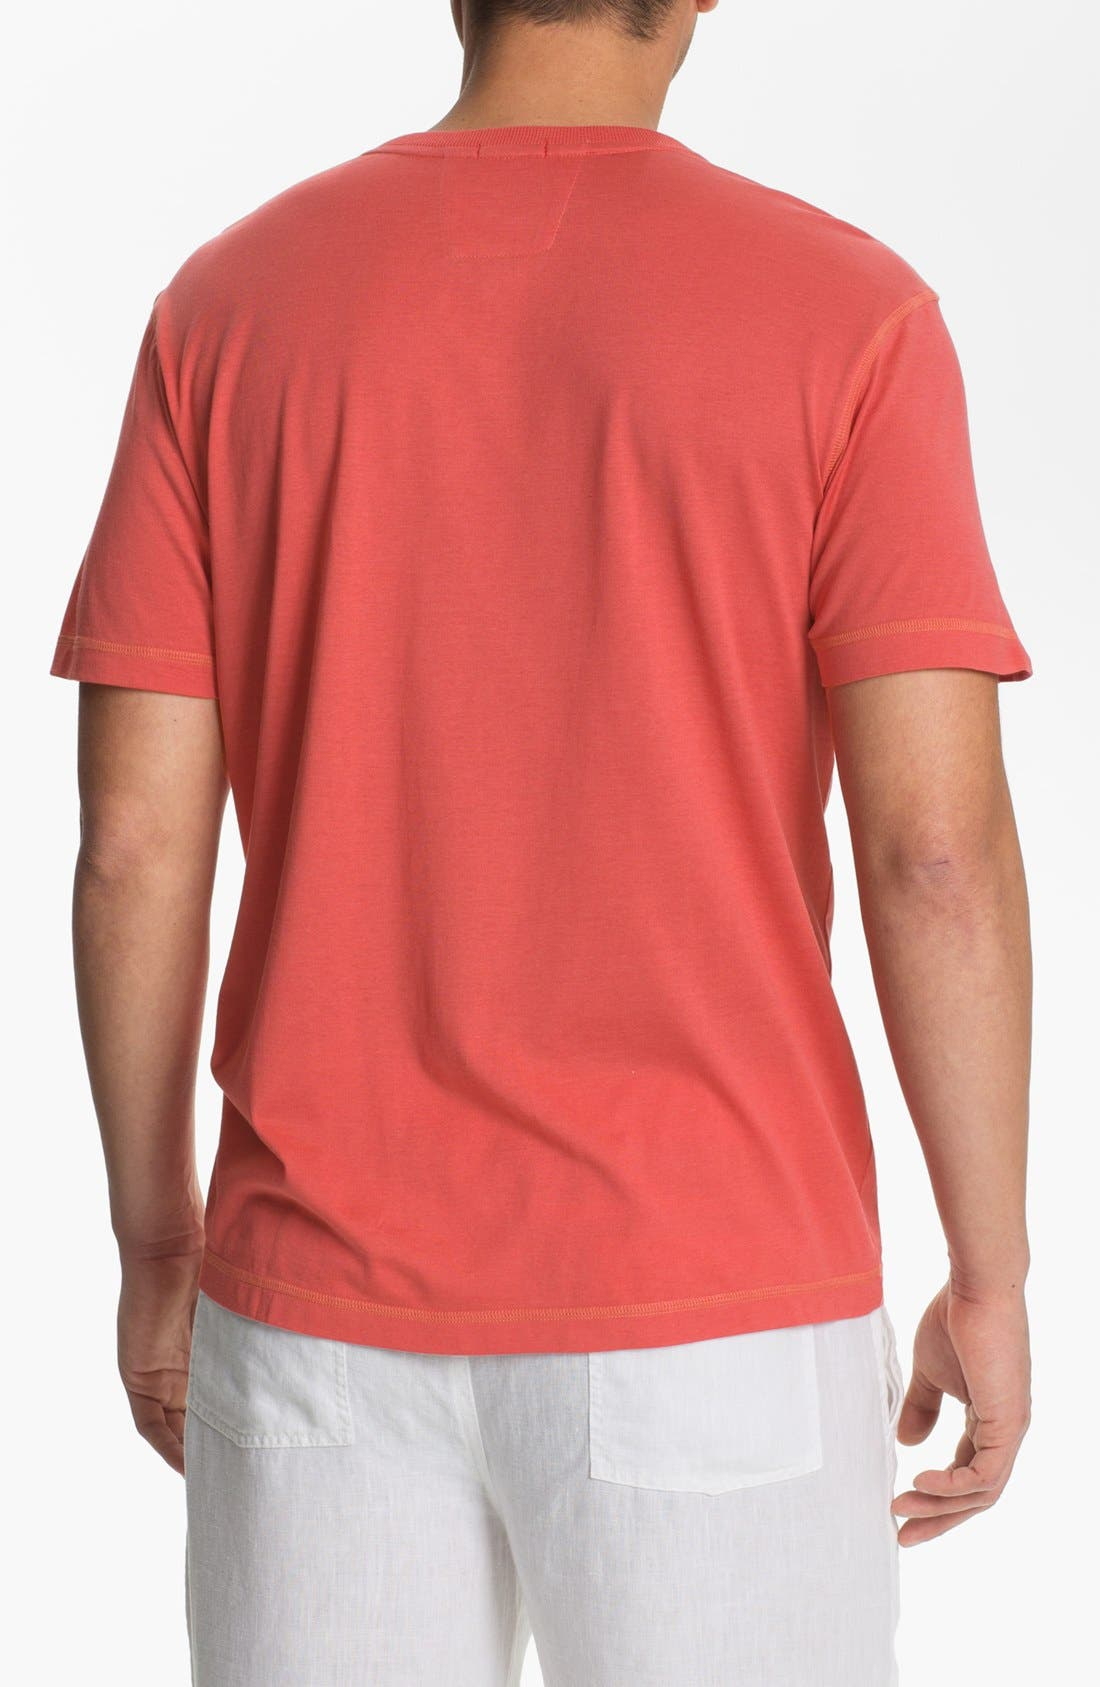 Alternate Image 2  - Daniel Buchler V-Neck Silk Blend T-Shirt